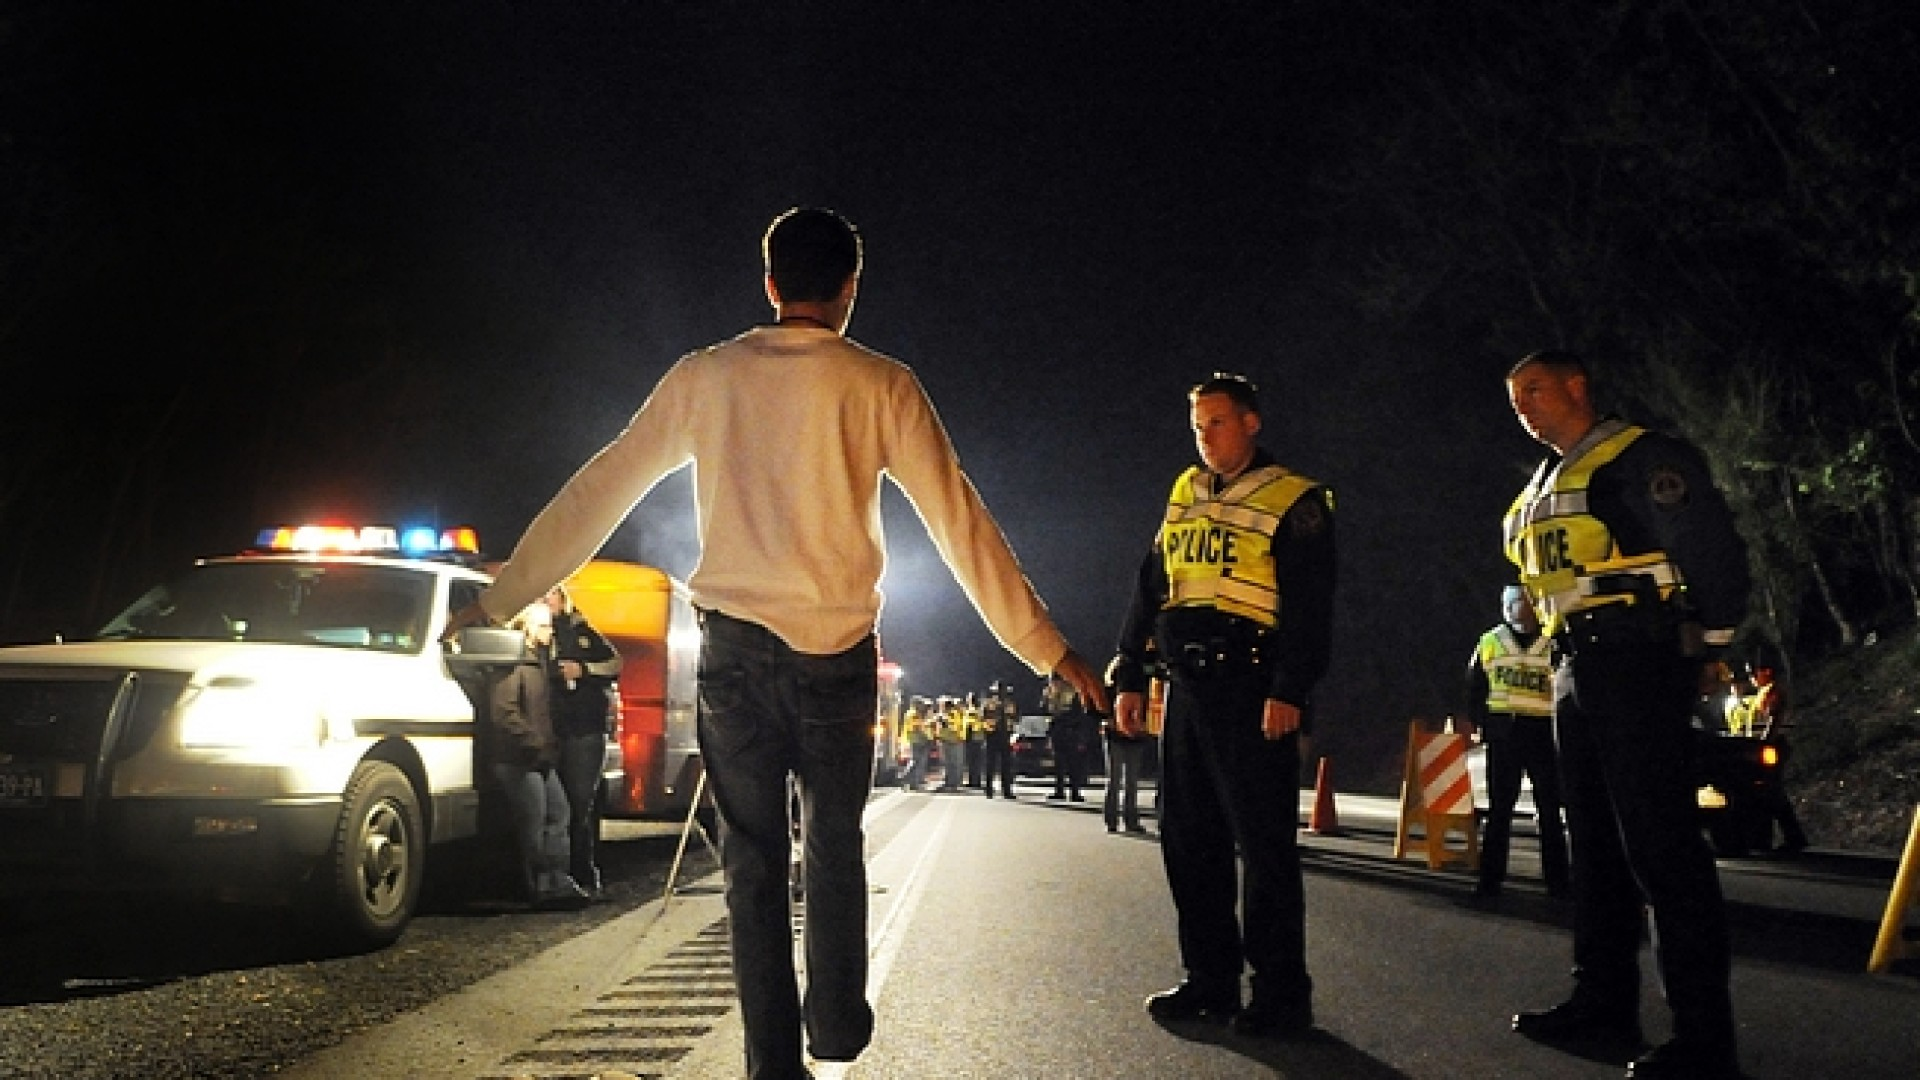 West Manchester Township Police Officer Adam Bruckhart, left, and York Area Regional Police Officer Mike Georgiou observe a driver suspected of being under the influence of alcohol as he performs a field sobriety test at a DUI checkpoint on the business loop of Interstate 83 Friday, April 23, 2010. The driver was later arrested on suspicion of DUI. DAILY RECORD/SUNDAY NEWS - KATE PENN